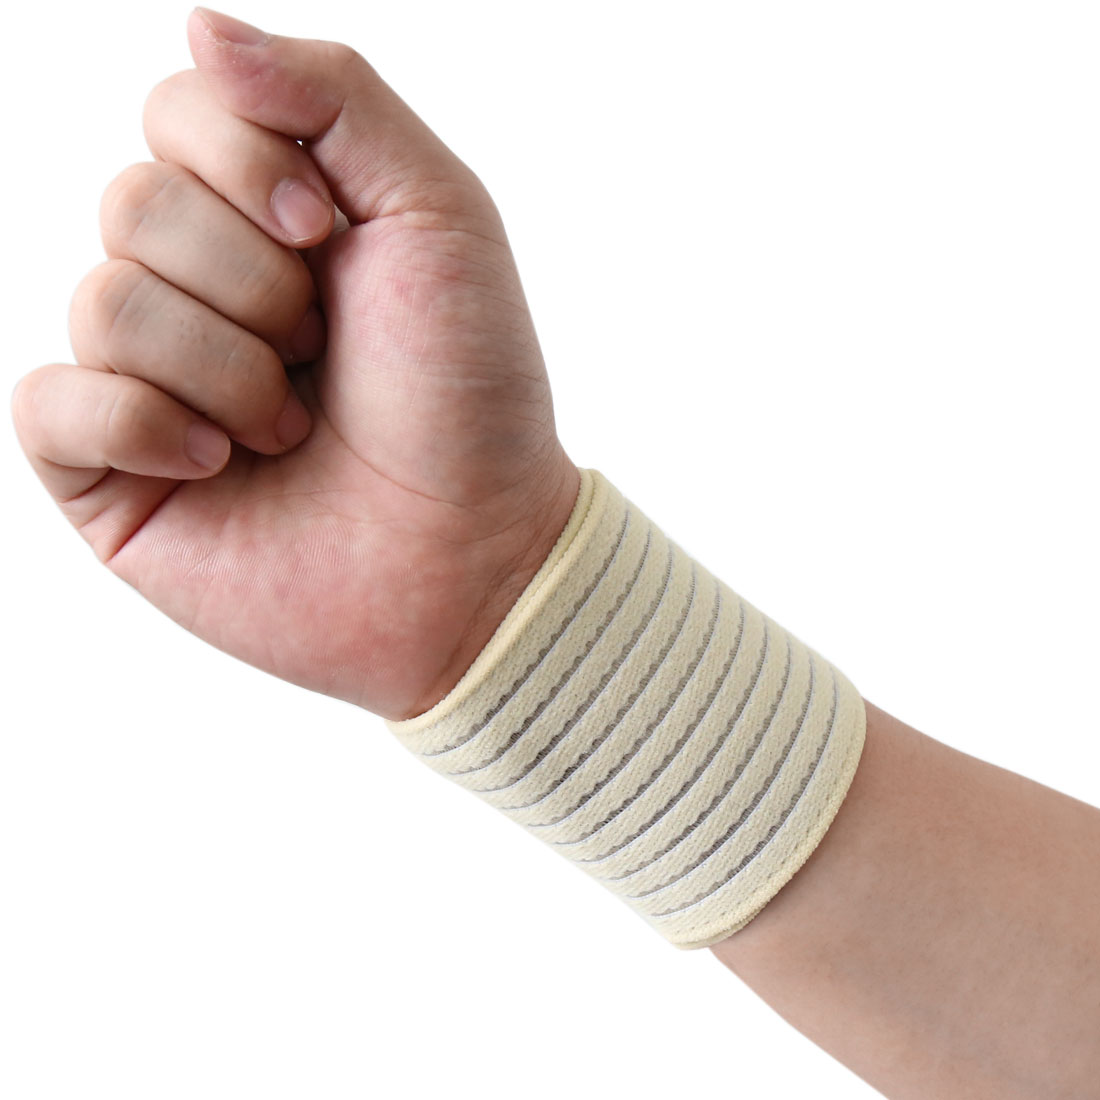 Beige Elastic Sports Wrist Brace Band Hand Palm Wrap Bandage Guard Supporter